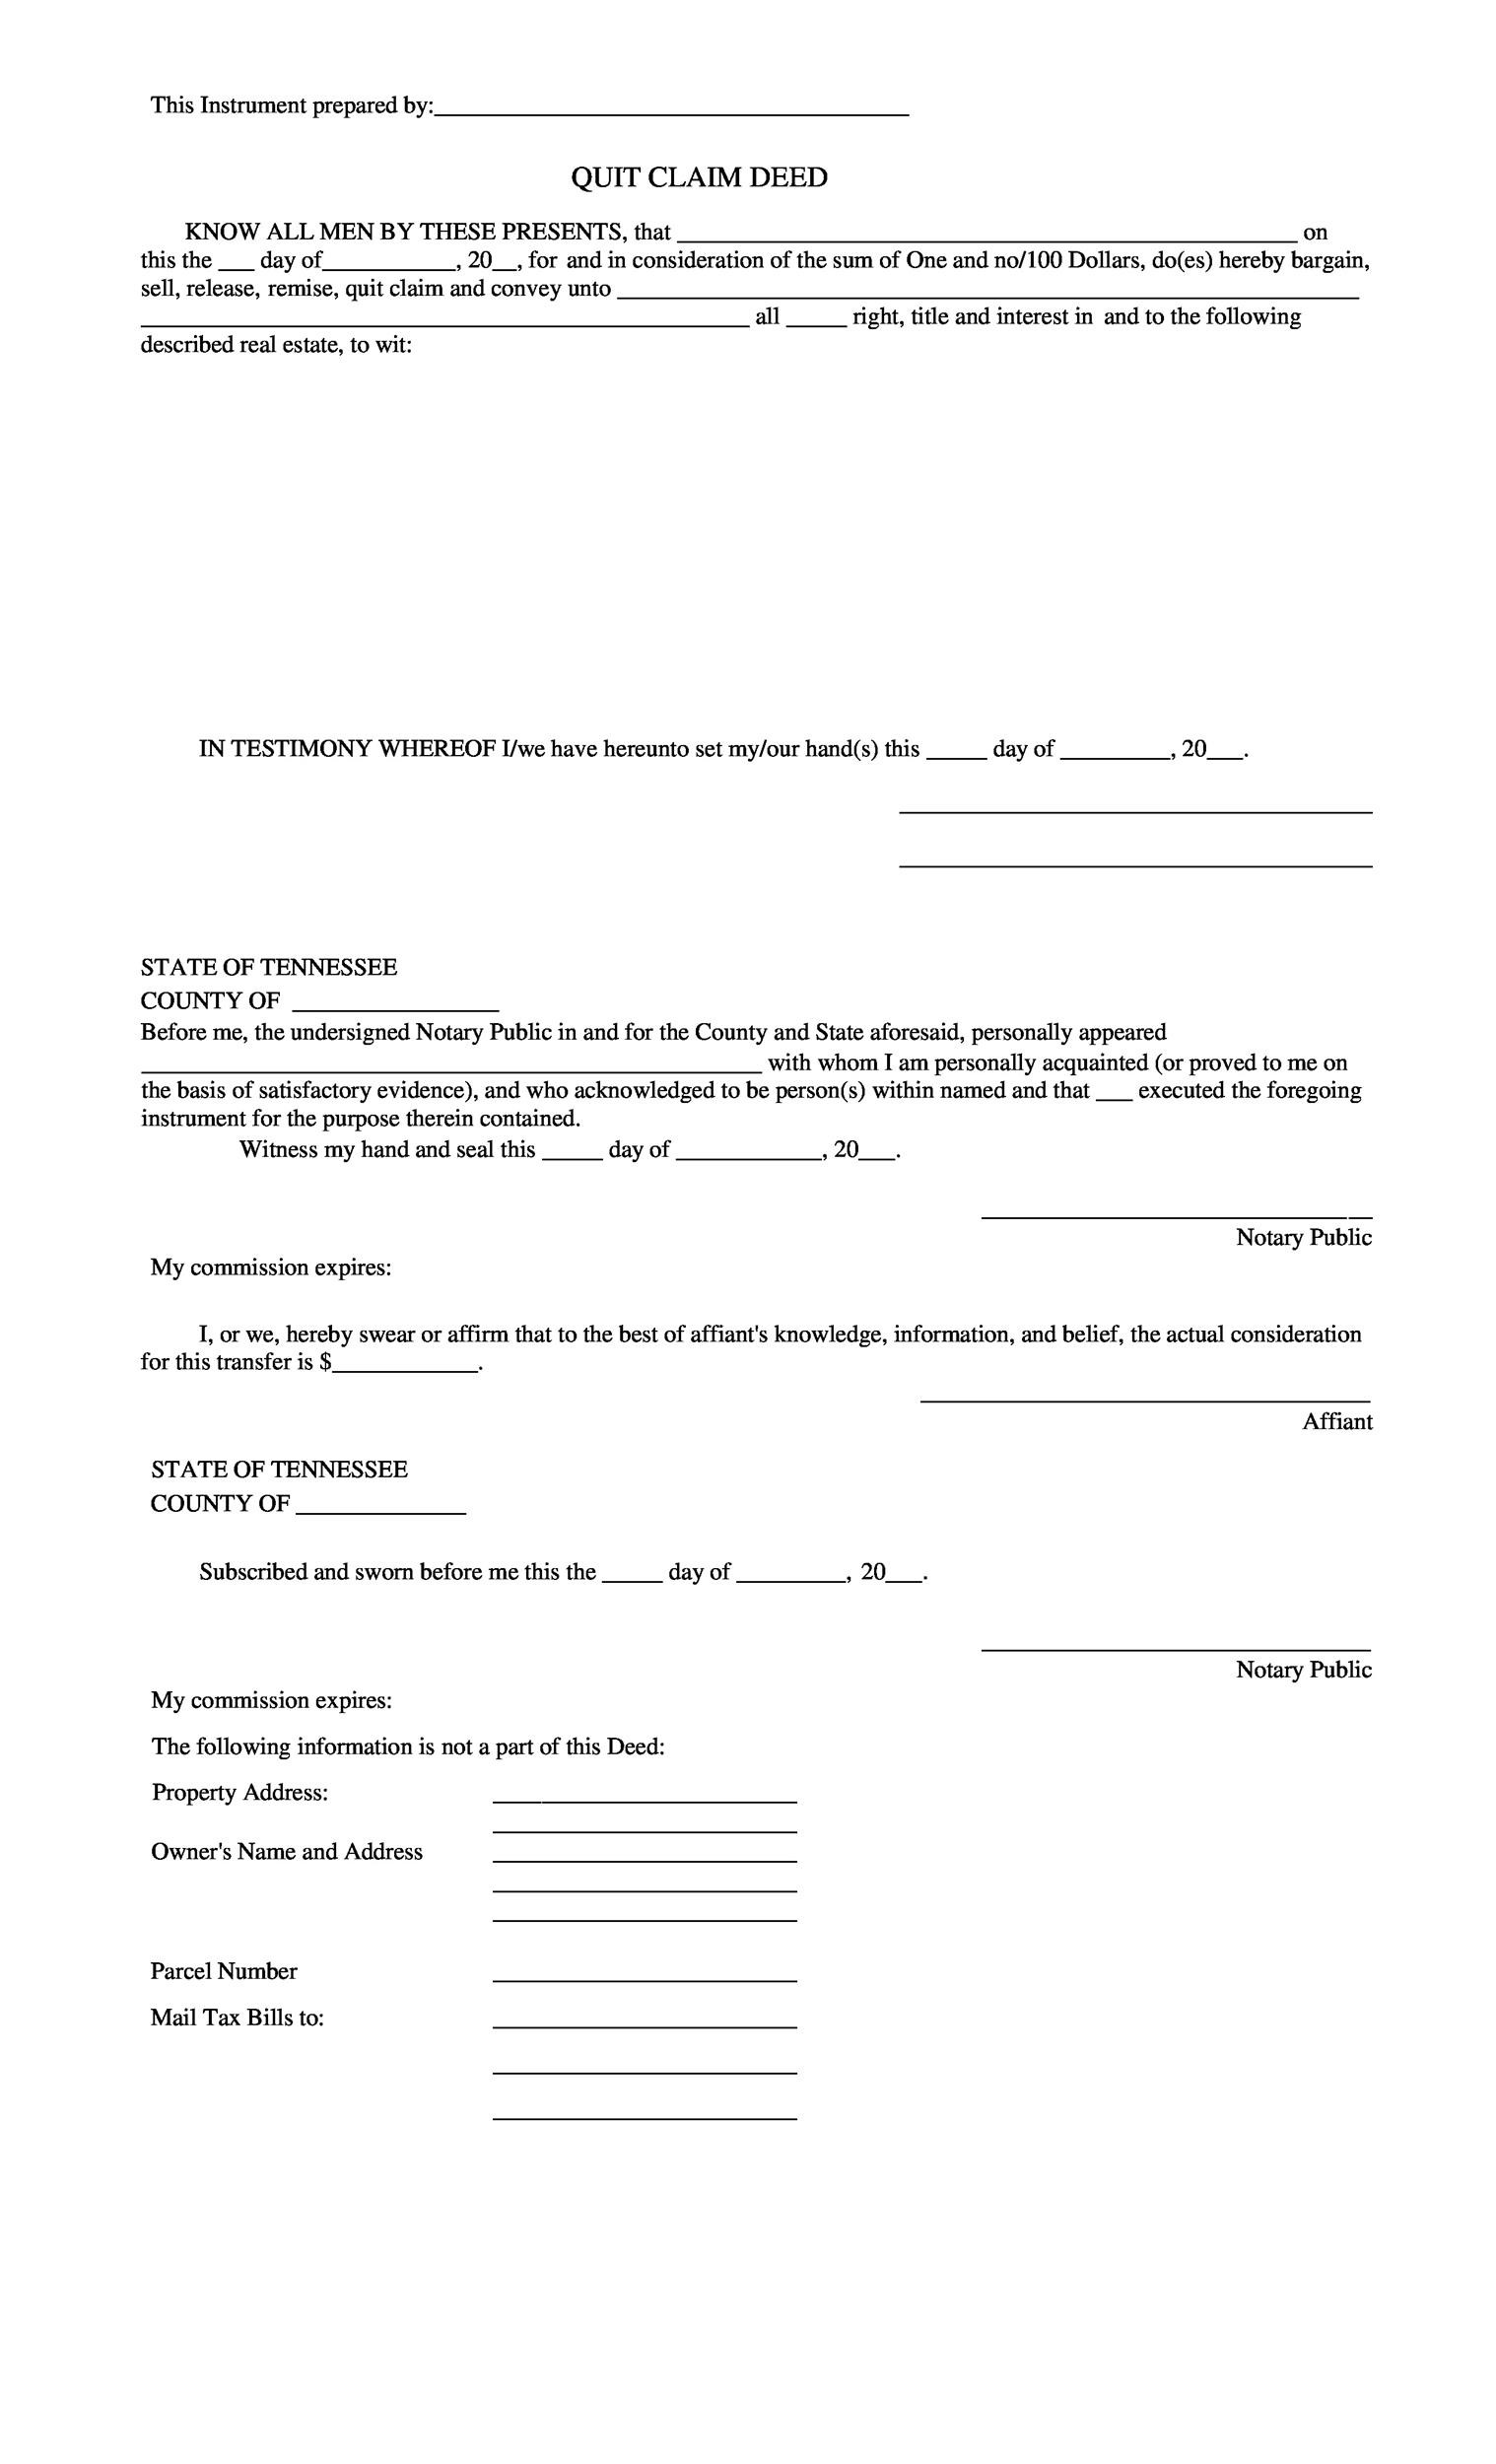 Free Quit Claim Deed Template 08